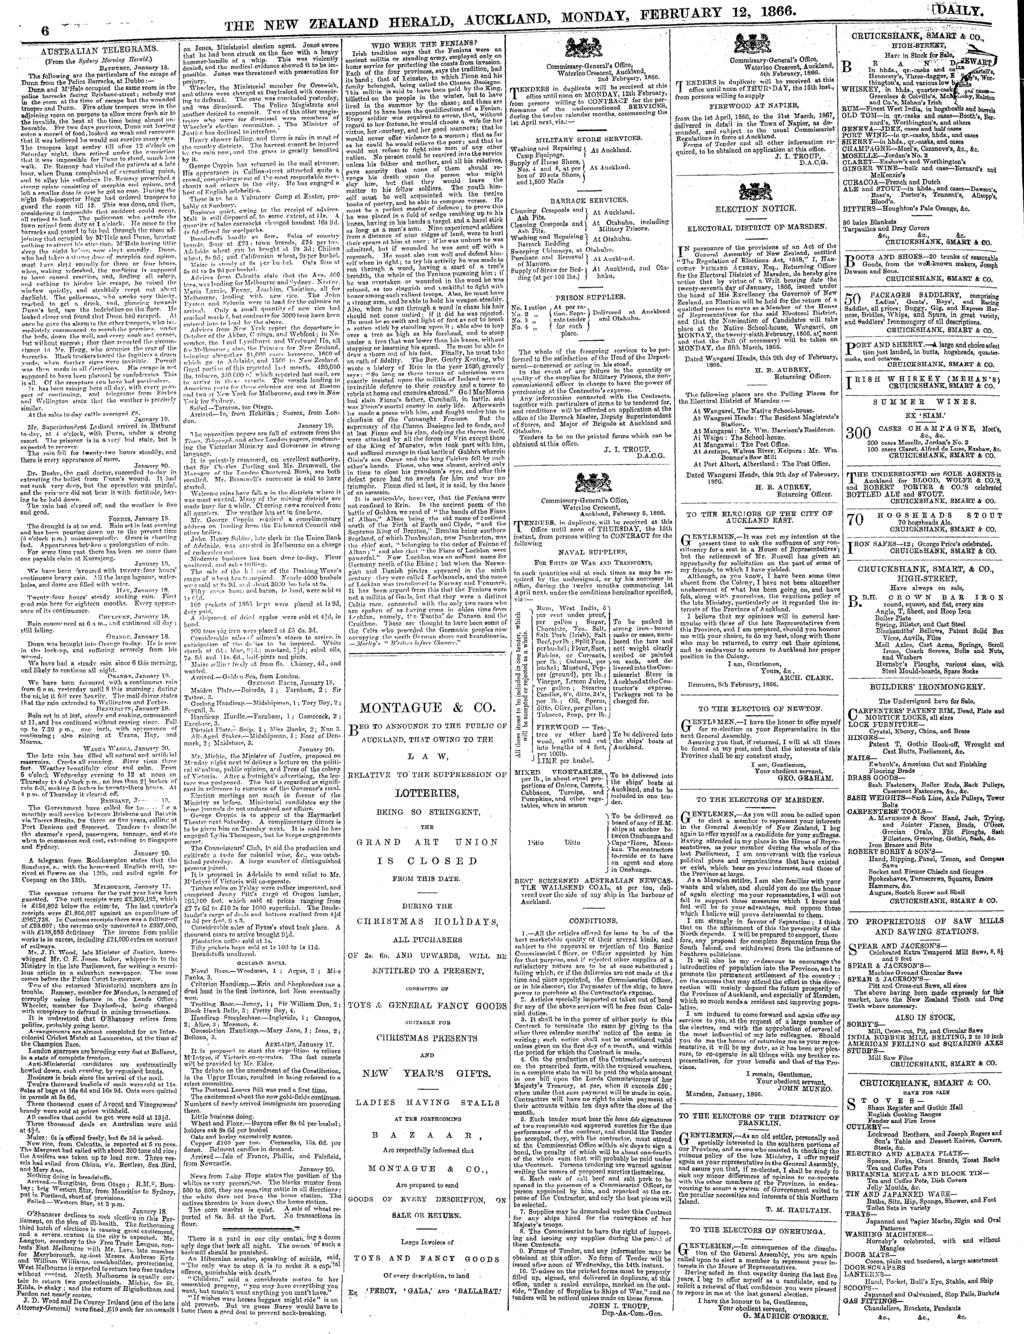 The New Zealand Herald Pdf Free Download